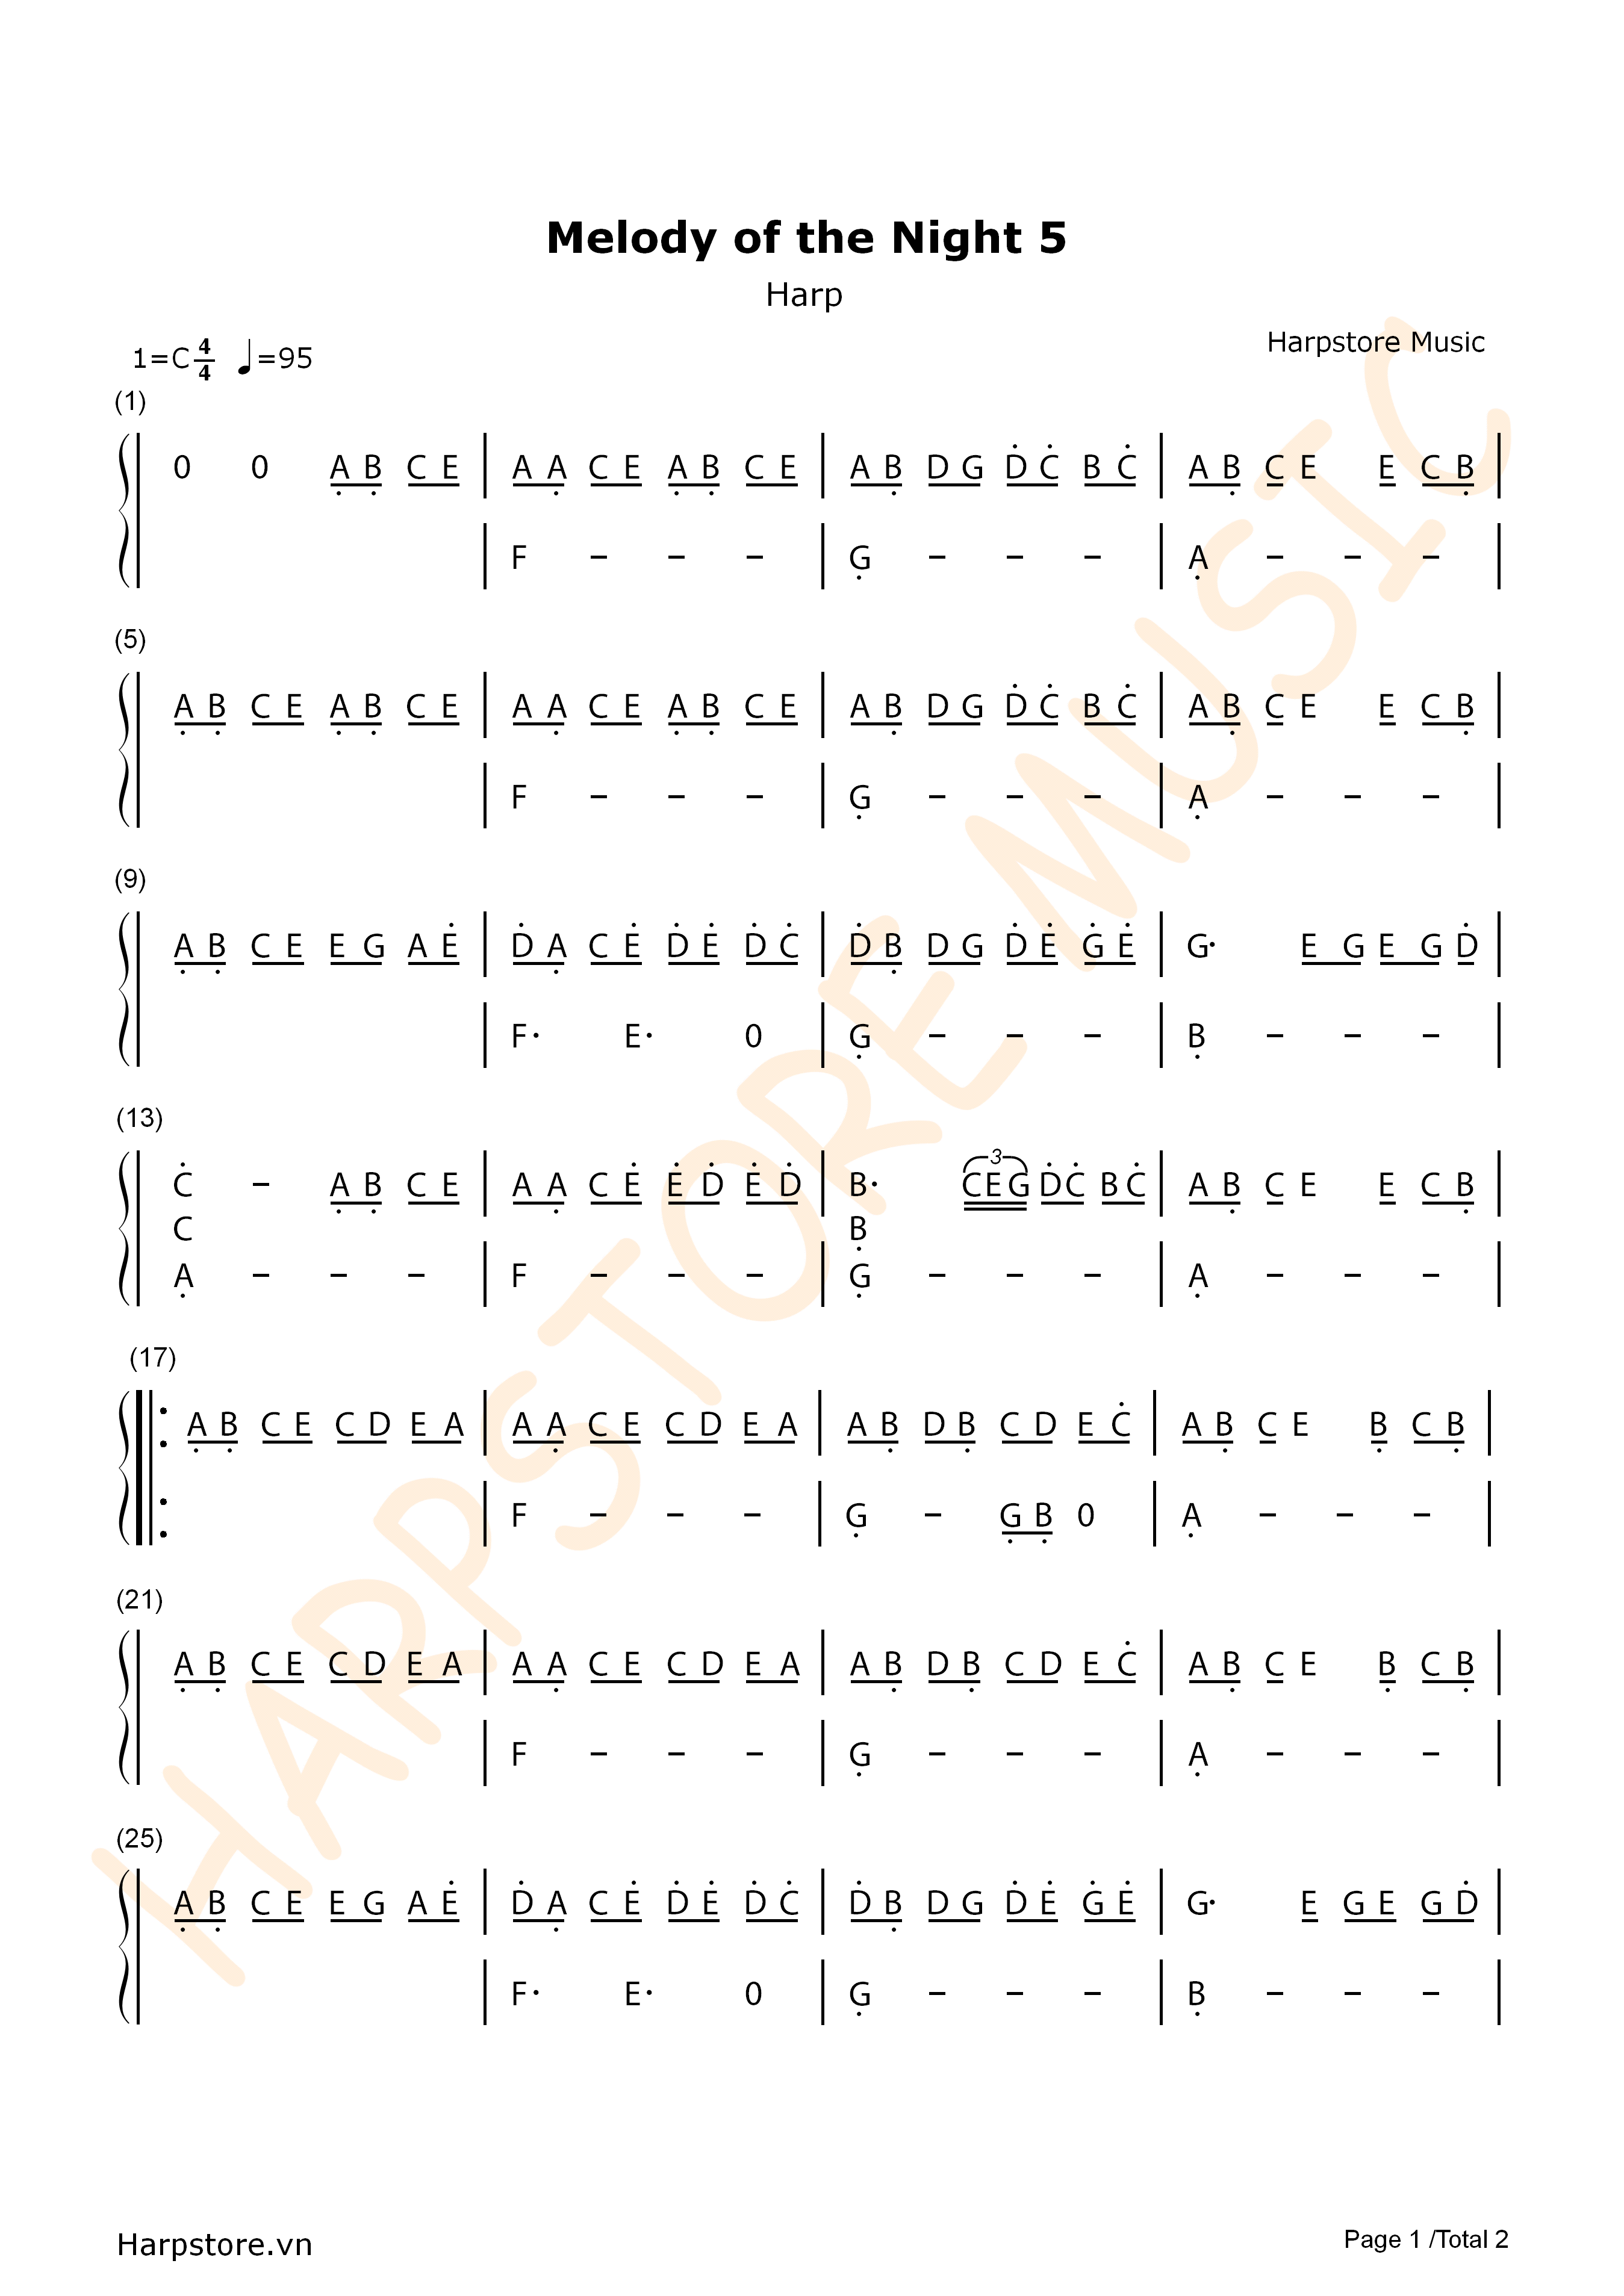 Melody of the Night 5 Harp Tabs